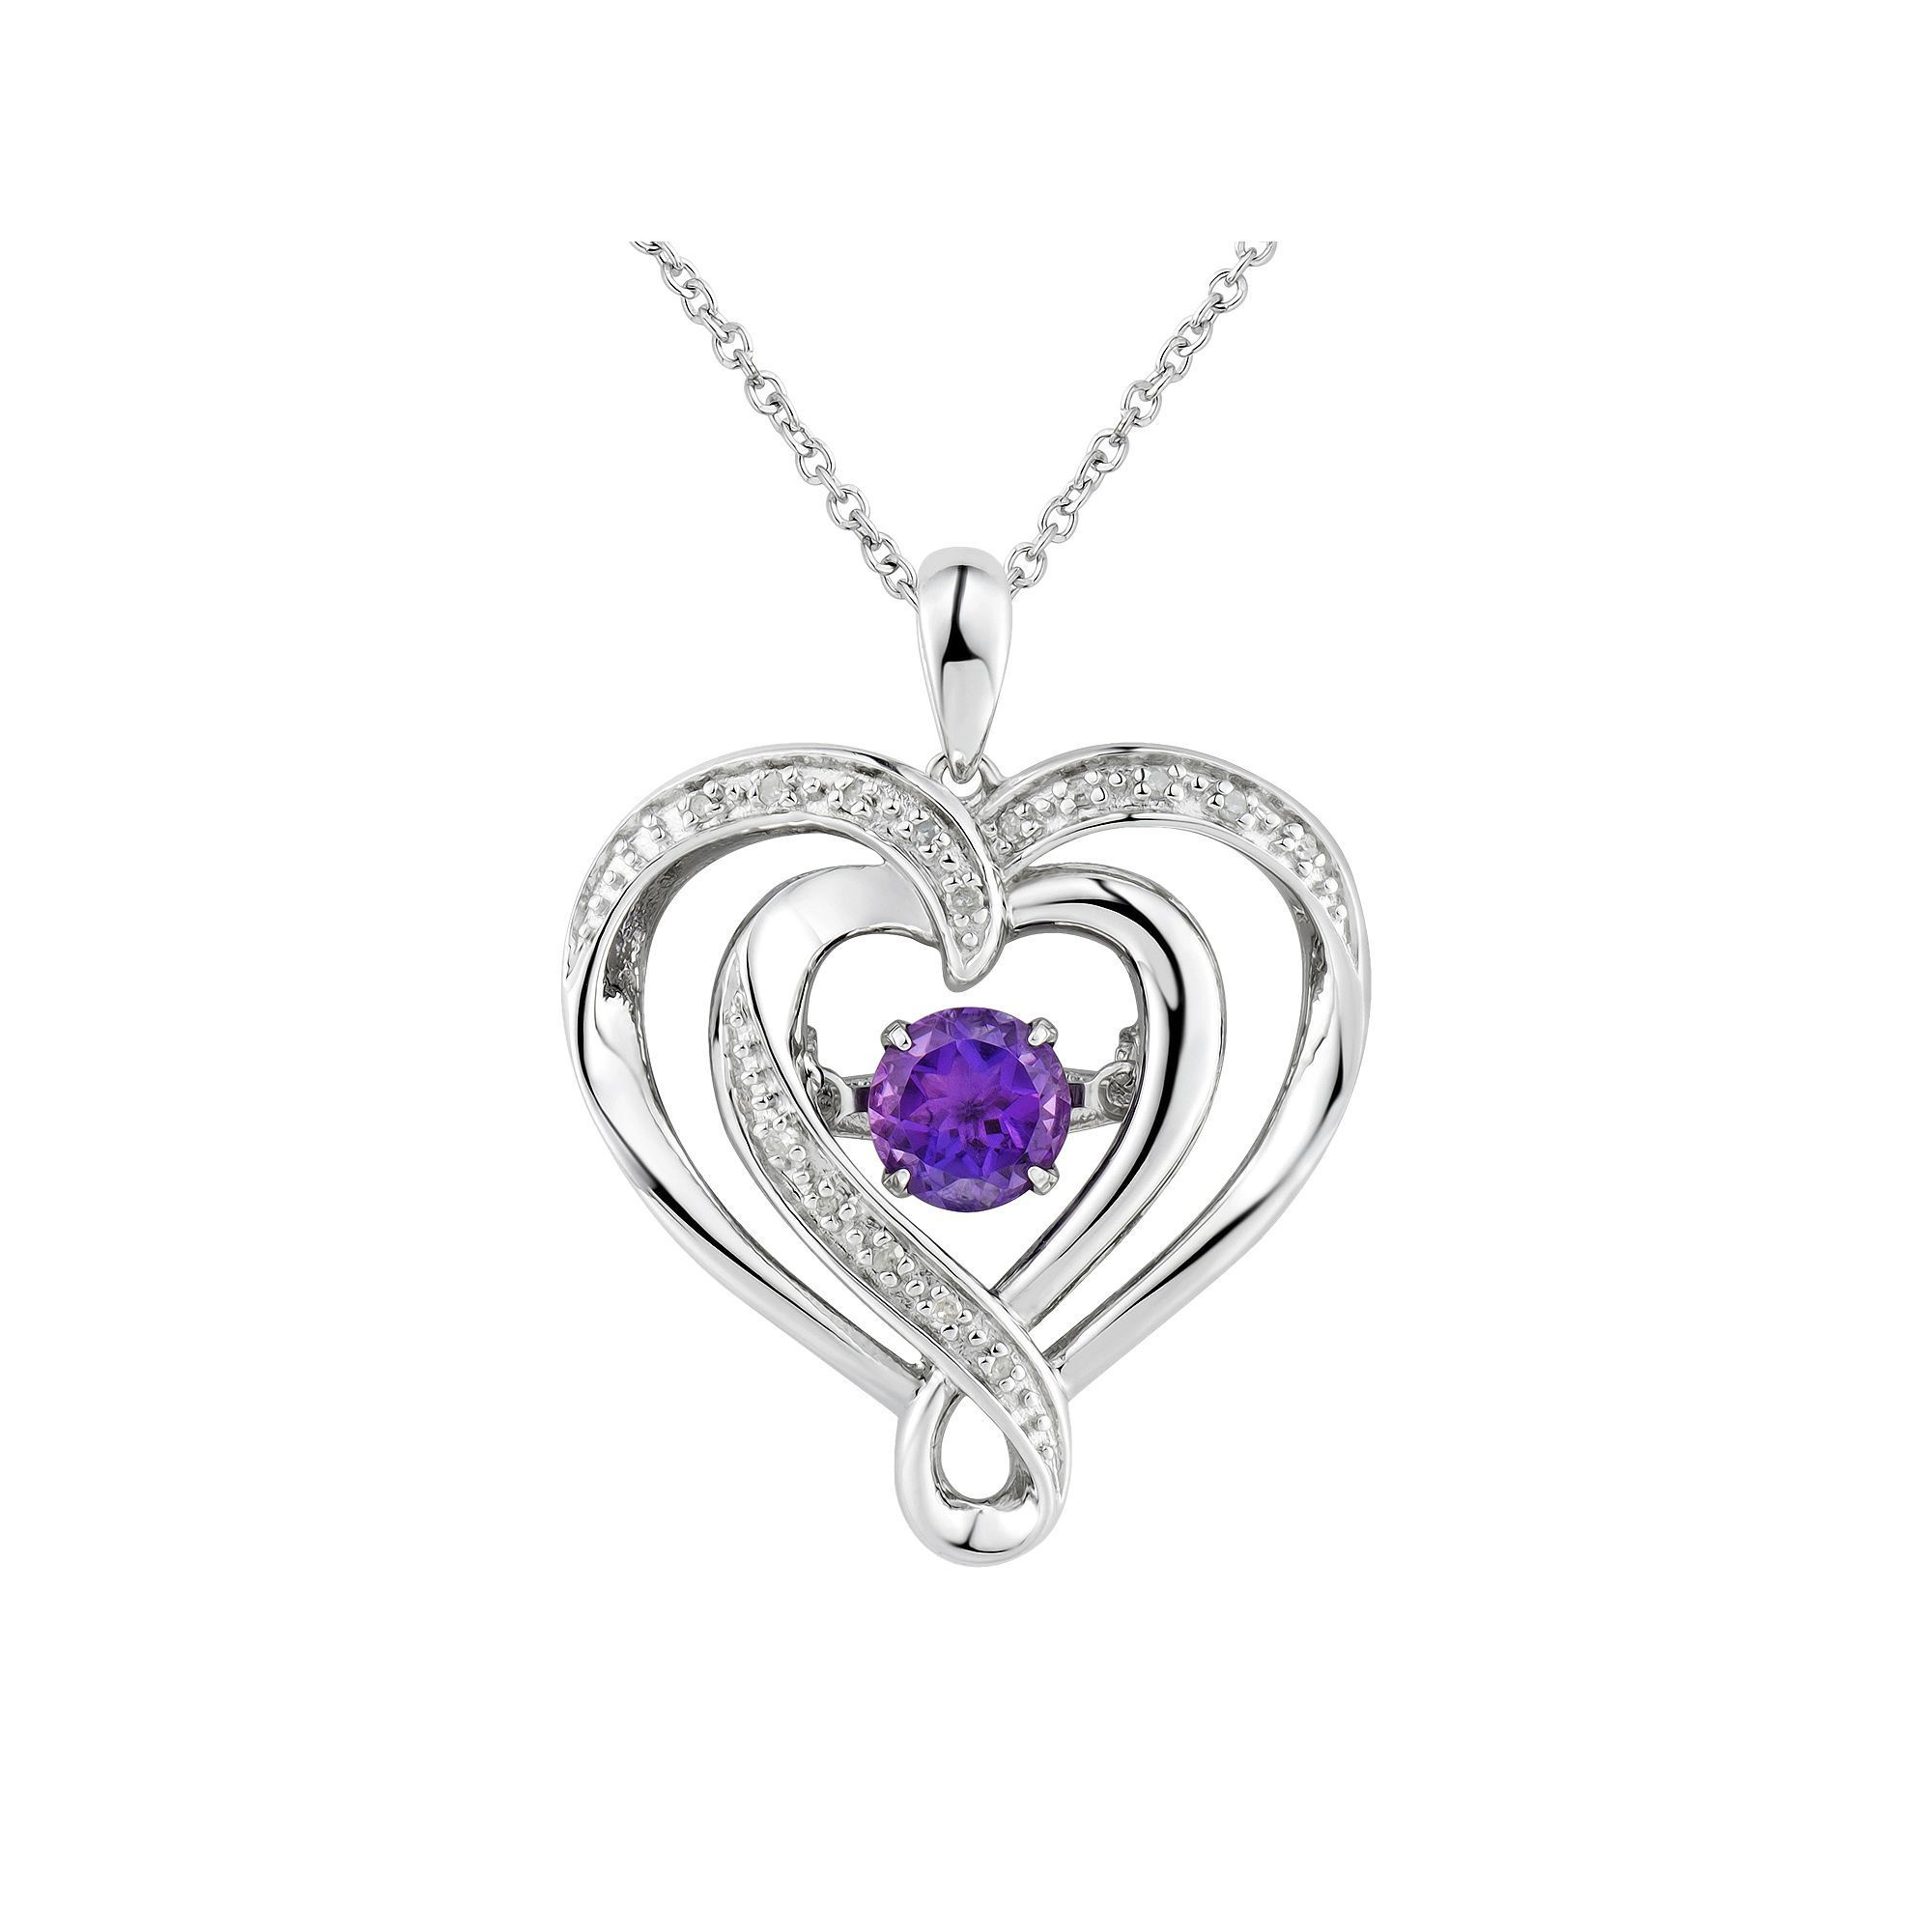 Two hearts forever one amethyst diamond accent sterling silver two hearts forever one amethyst diamond accent sterling silver floating heart pendant necklace womens size 18 purple mozeypictures Image collections